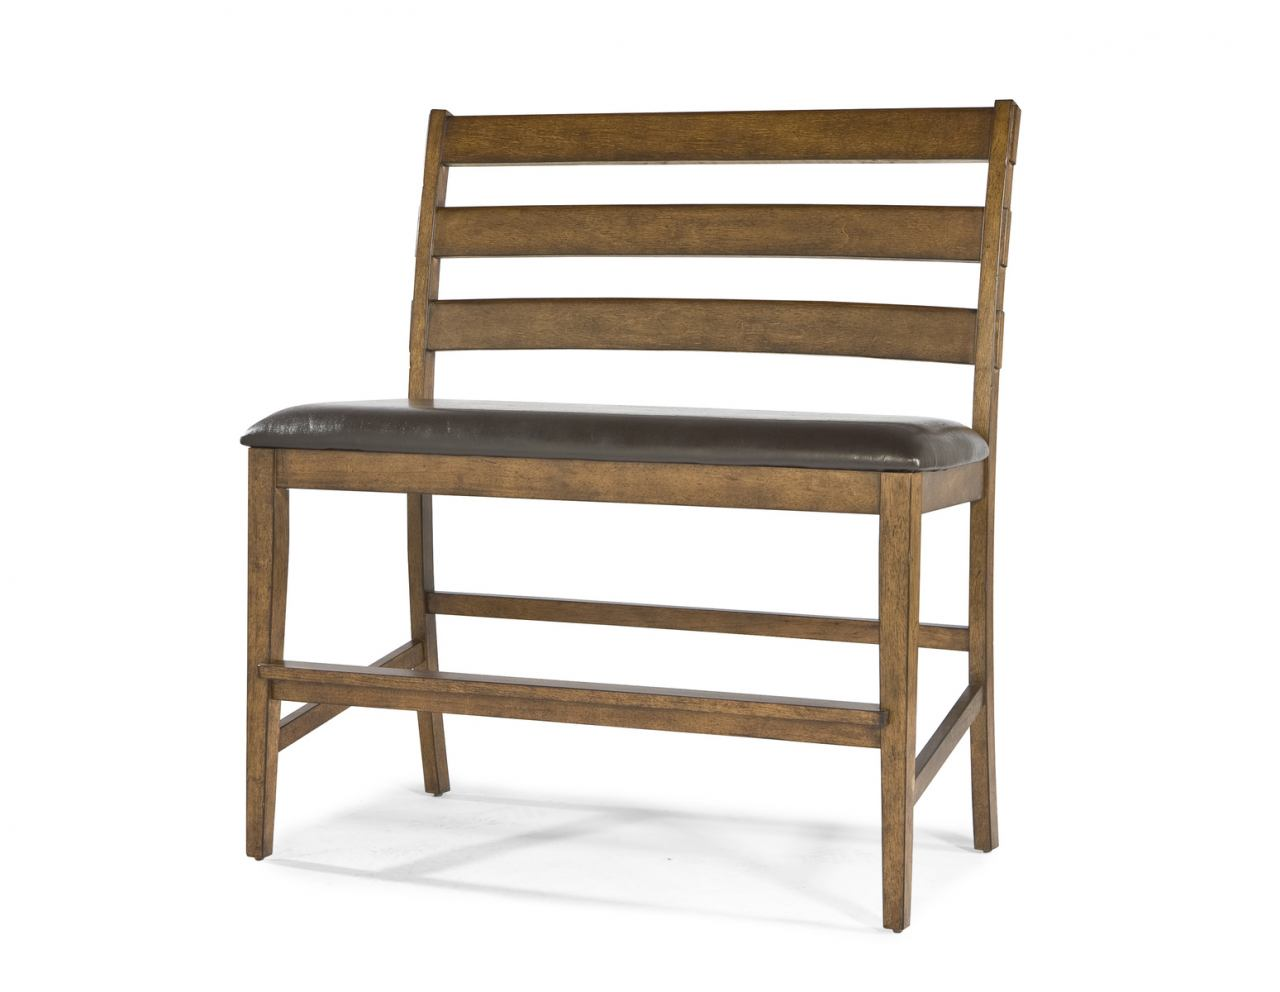 Intercon Furniture Santa Clara Ladder Back Bench in Brandy ST-BS-889CB-BDY-K24